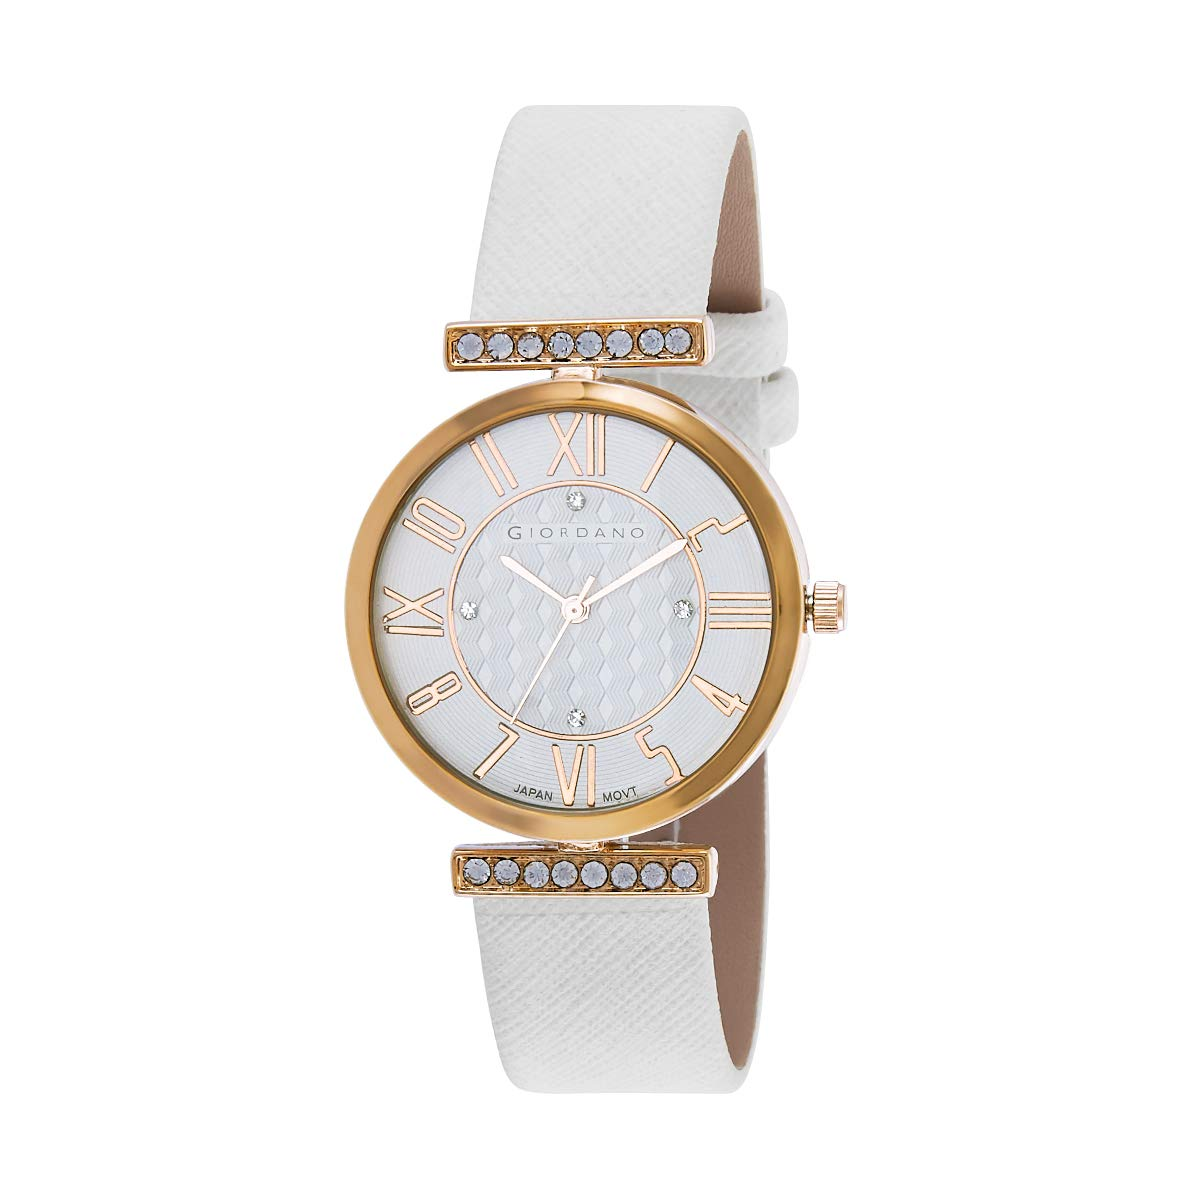 Giordano Analogue White Dial Women's Watch Price in India